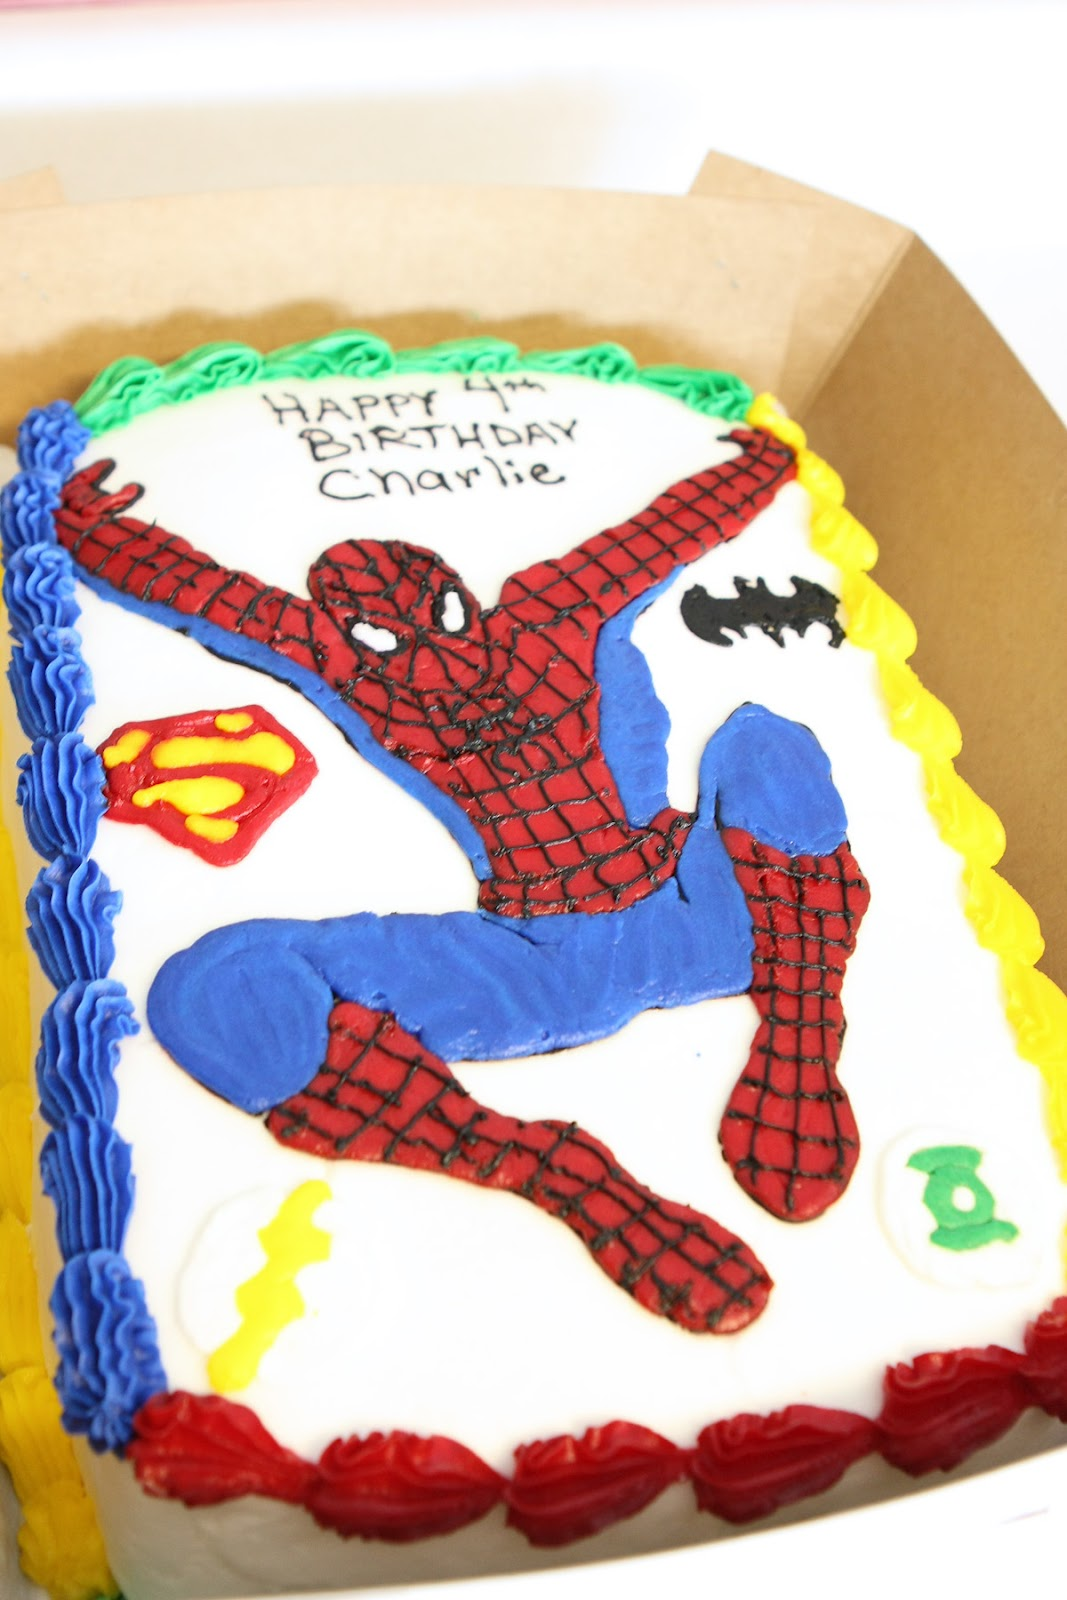 We Invited Some Of Charlies Friends To Join Him In Fighting The Bad Guys For His Party They Decorated T Shirt Capes Listened As Superman Daddy Read